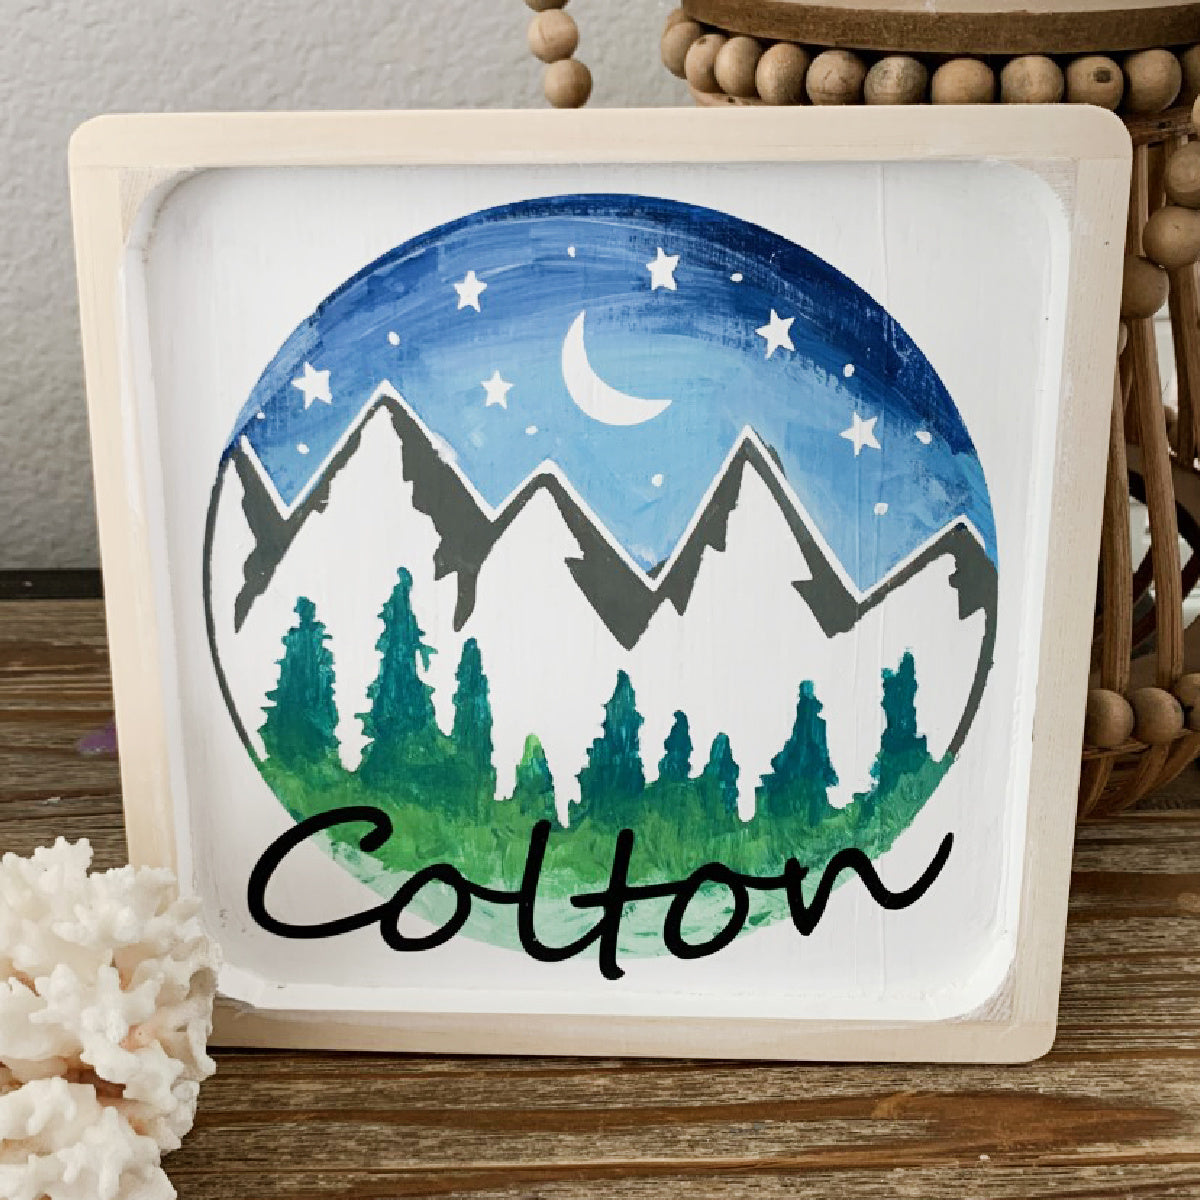 DIY Personalized Mountain Painting Kit